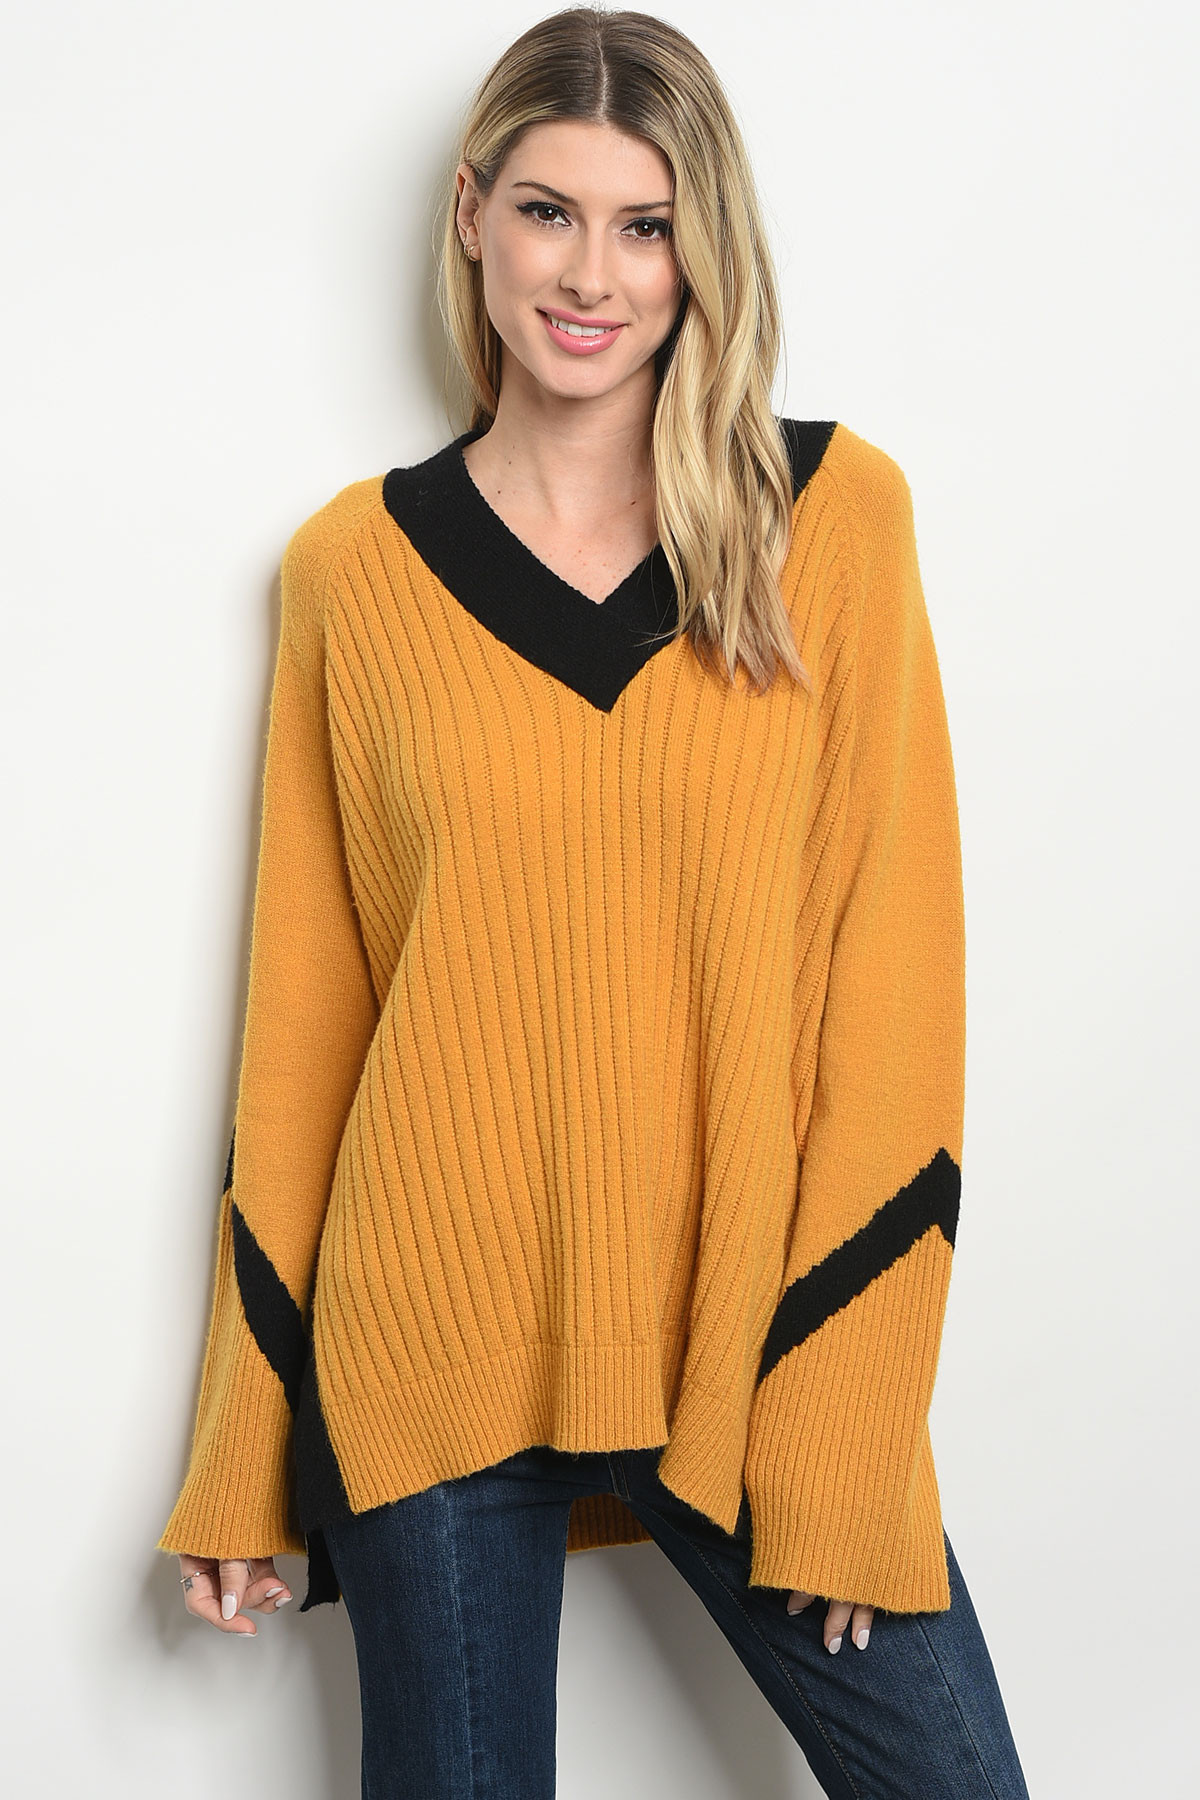 Baggy Pullover Sweaters